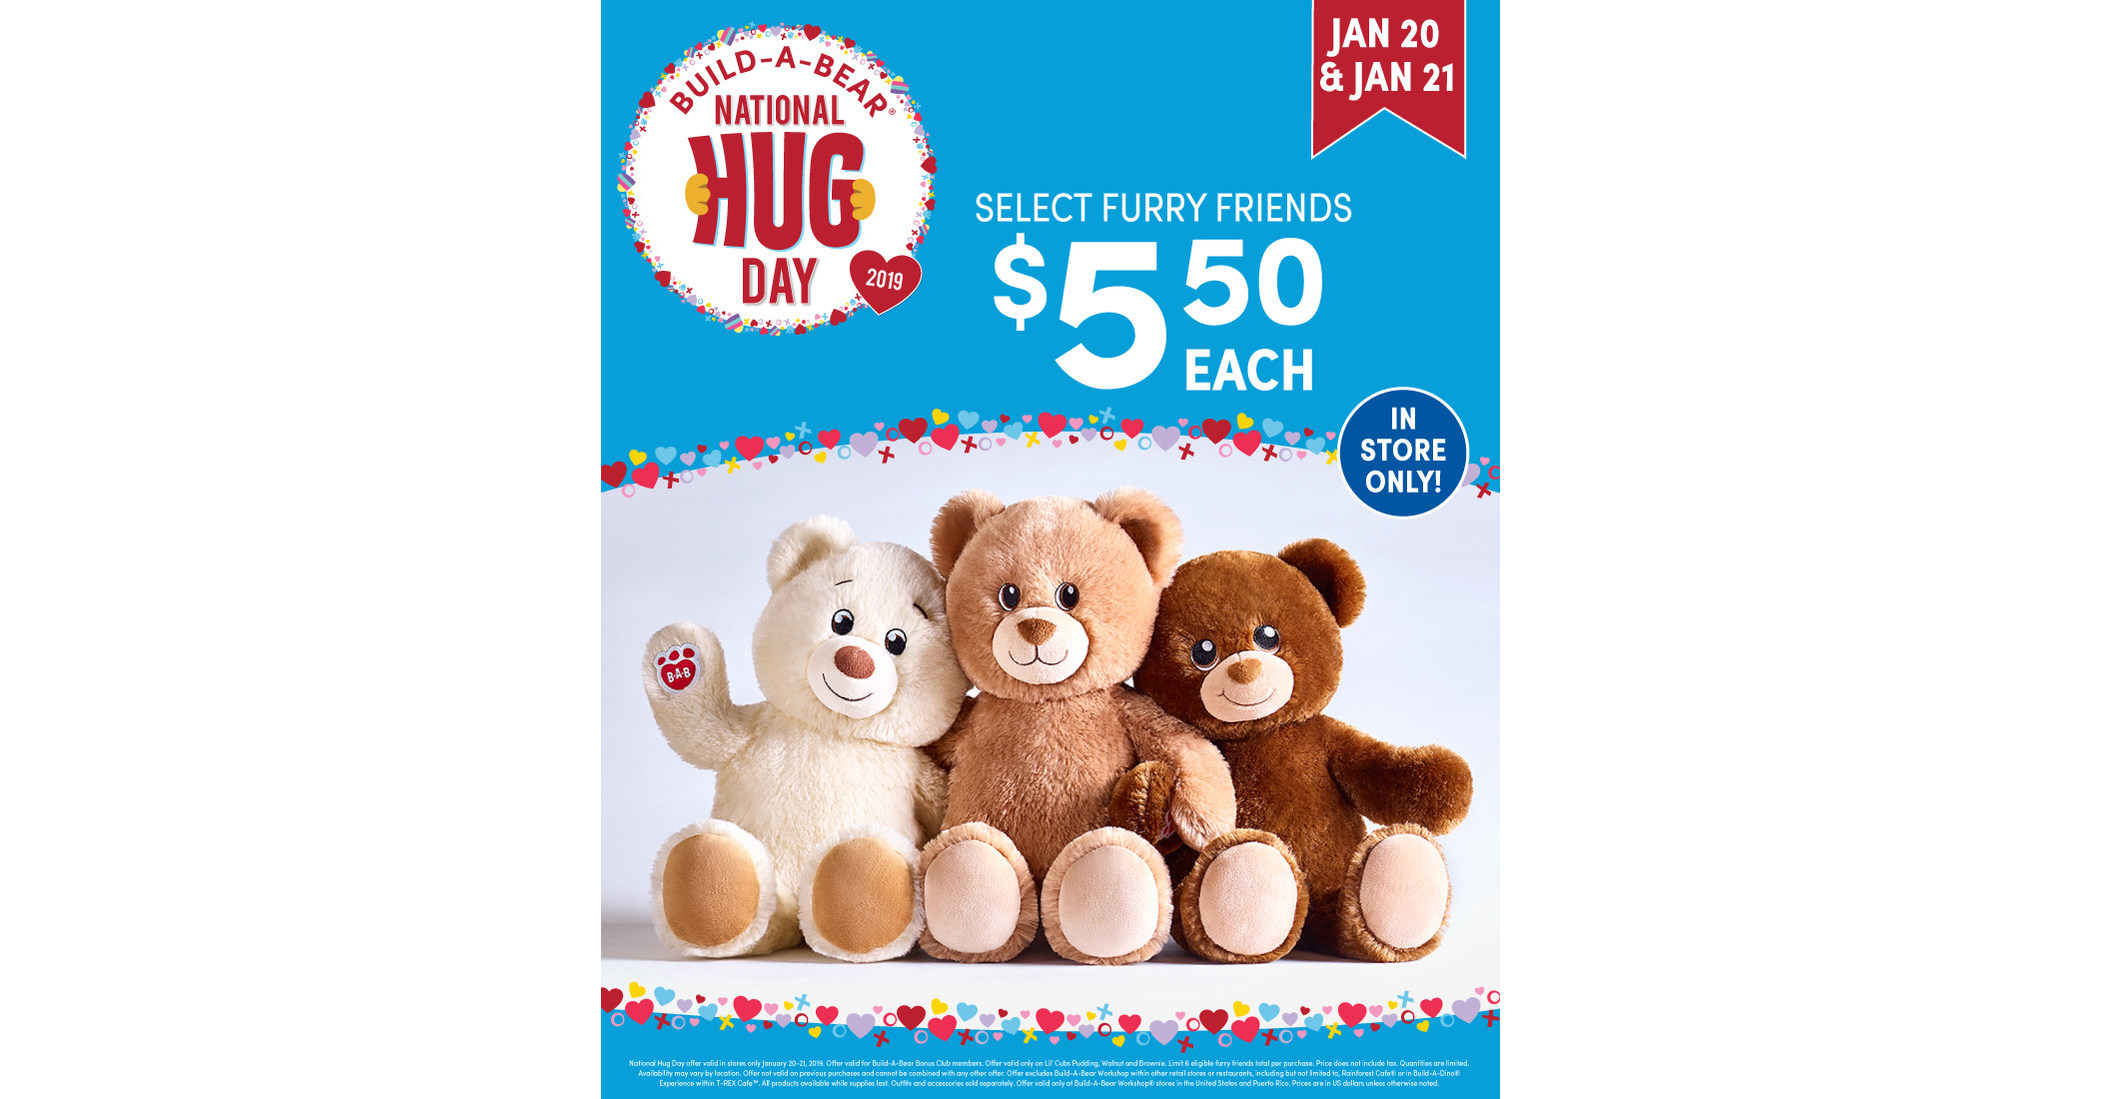 Build A Bear Embraces The Power Of Hugs For National Hug Day With Special Deals On Select Furry Friends